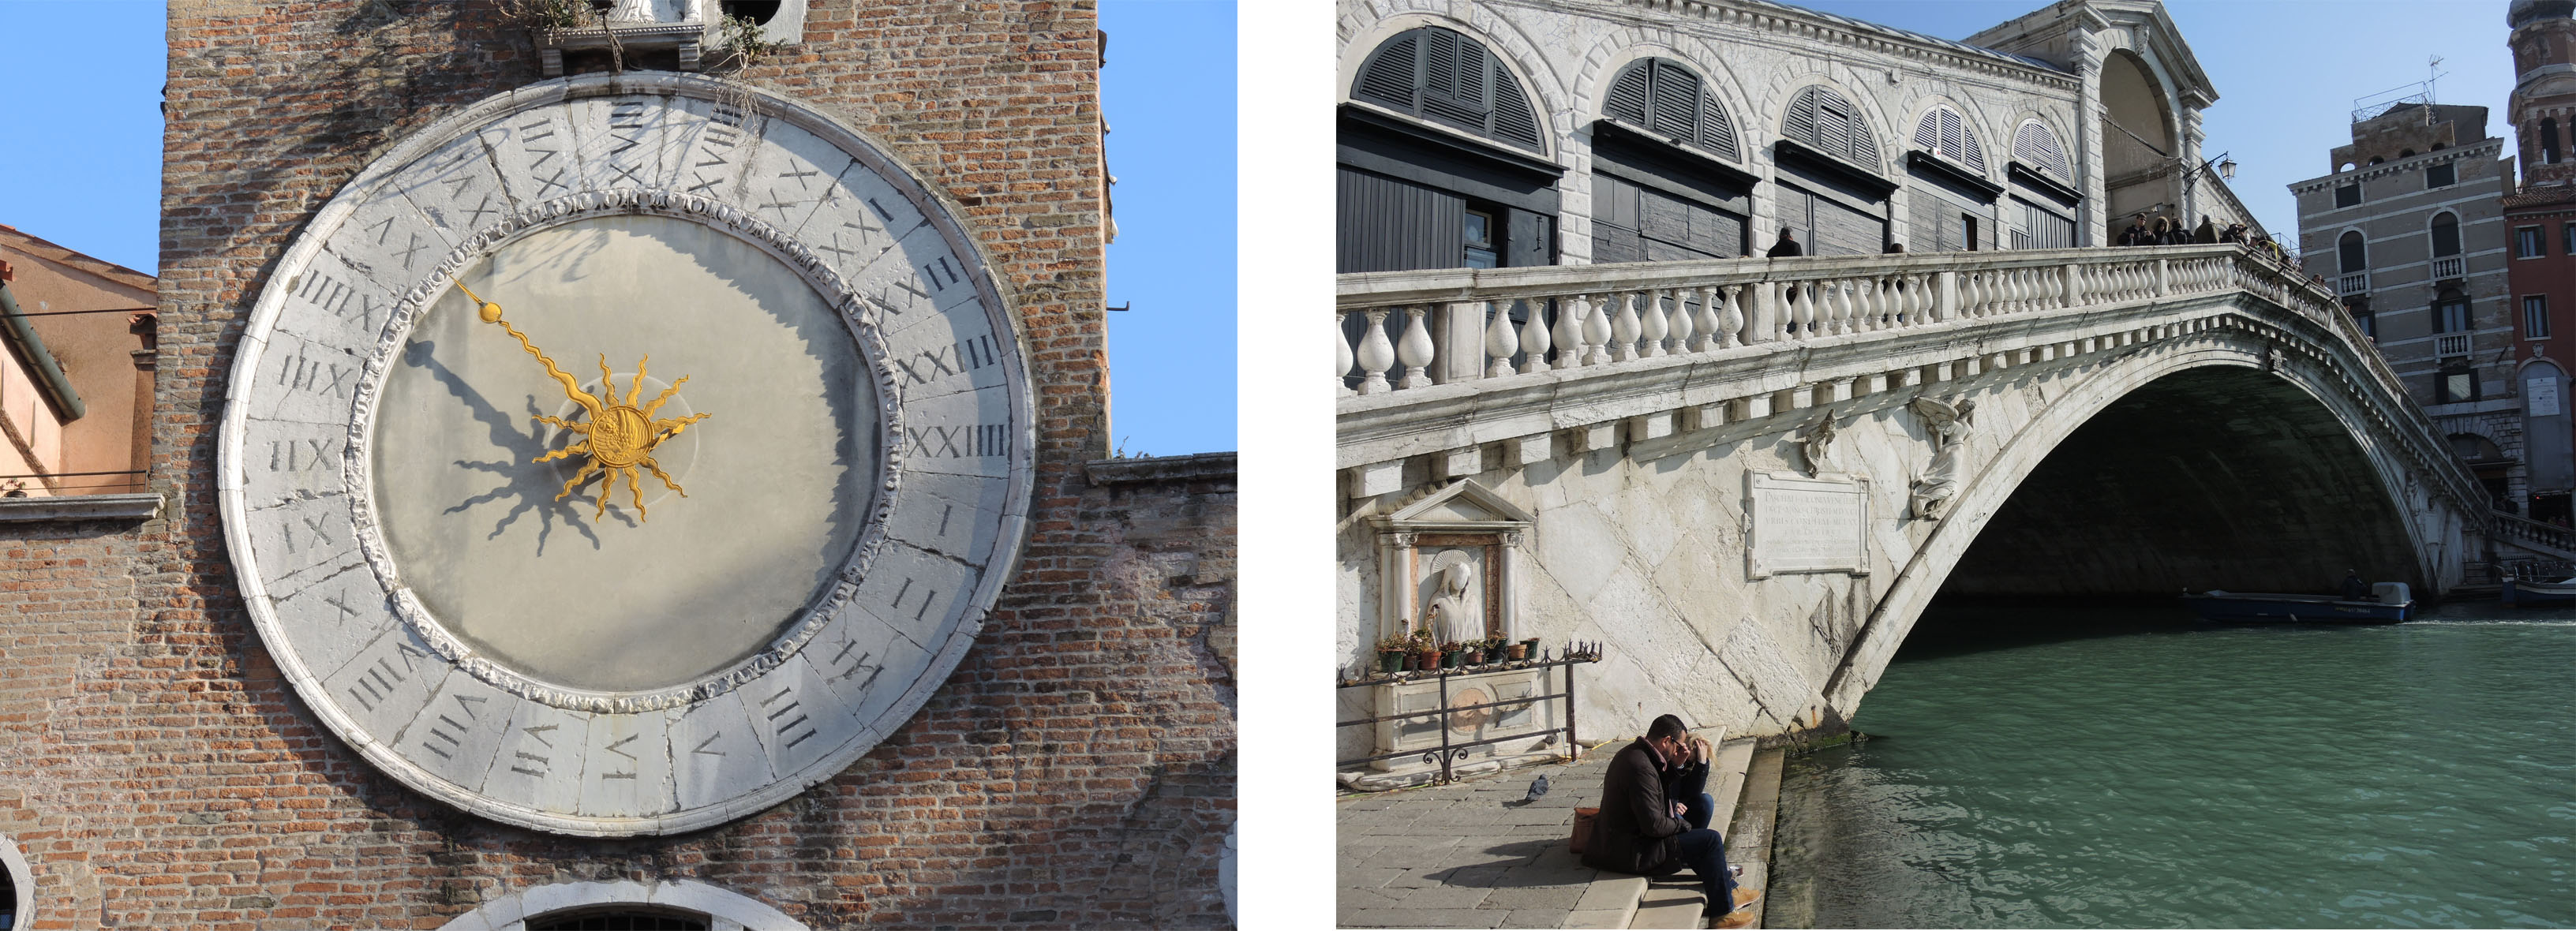 Rialto bridge – The merchants clock in Rialto